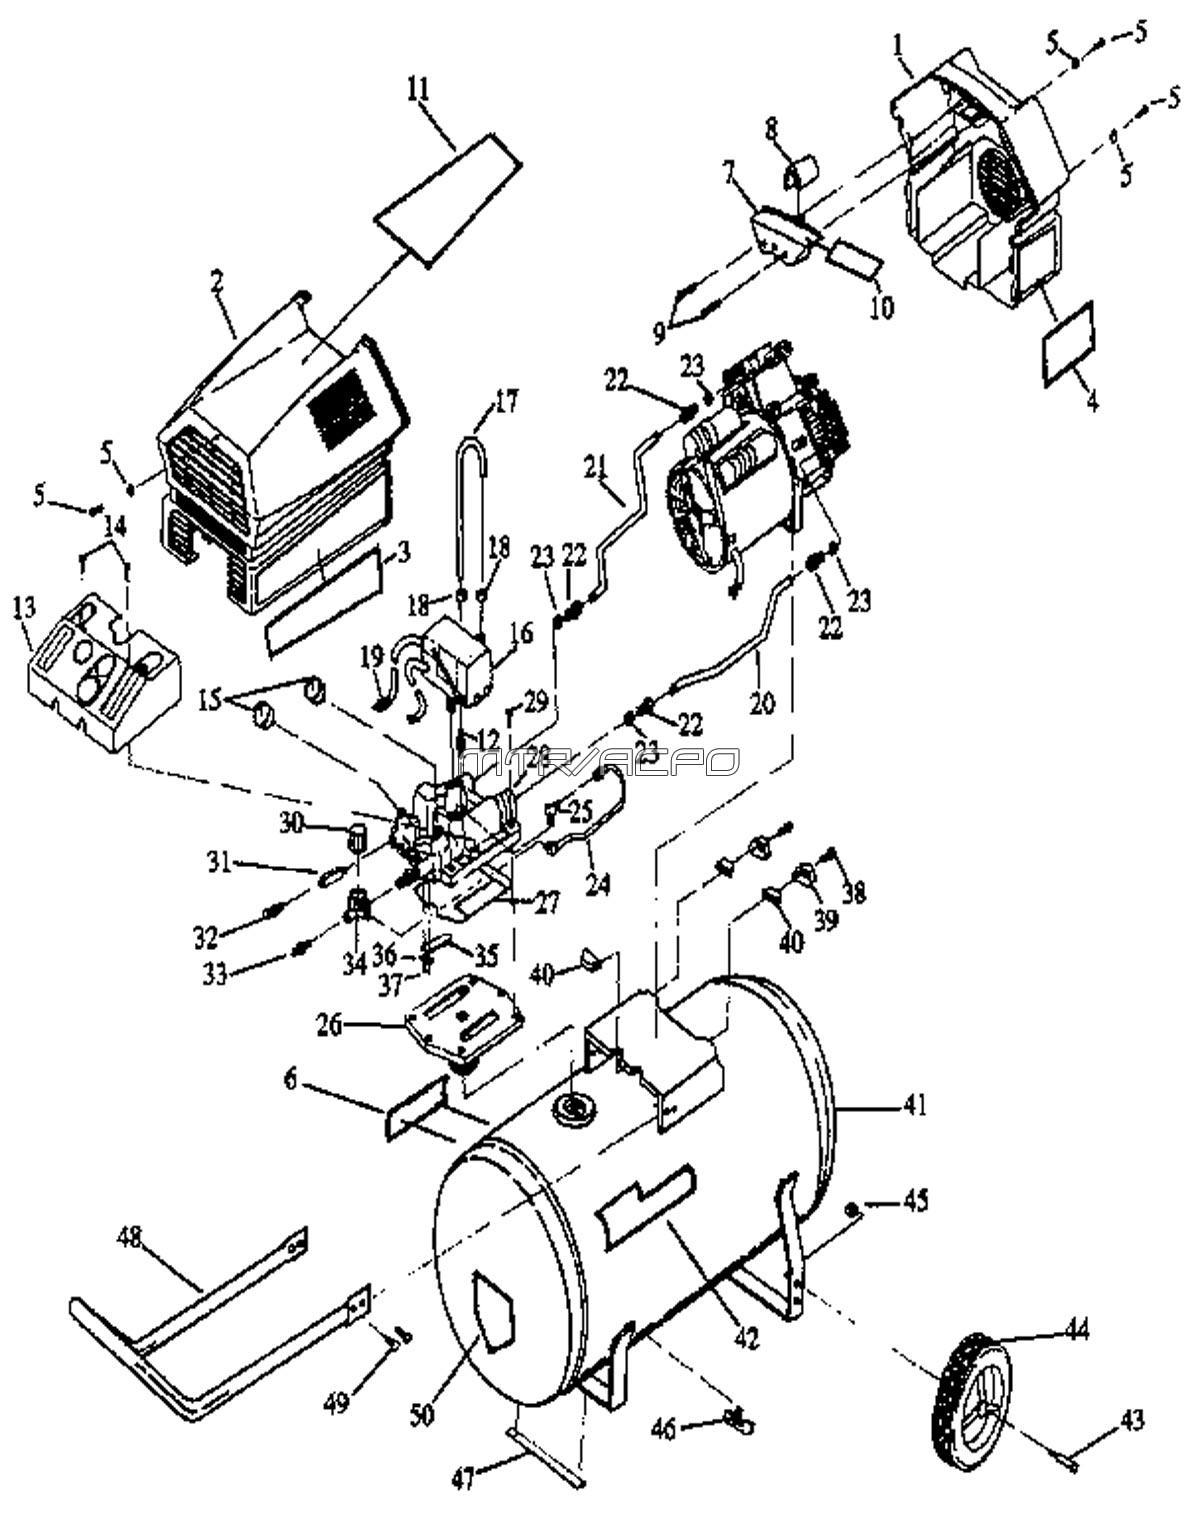 hight resolution of 919 152930 craftsman parts sears craftsman 919 152930 air compressor parts sears 1 hp air sears air compressor wiring diagram